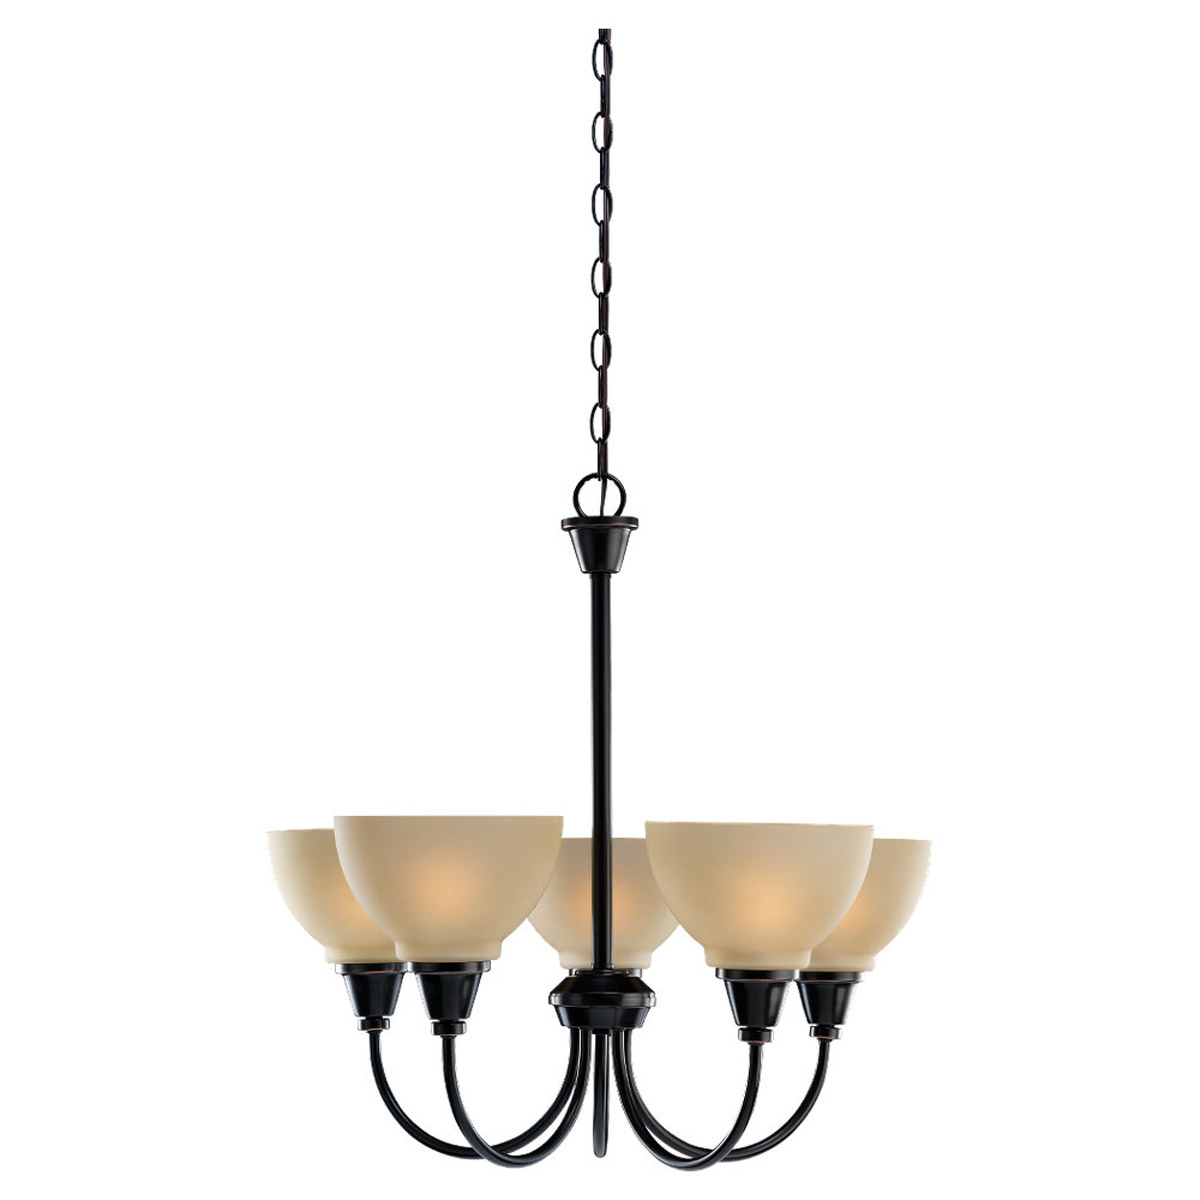 Sea Gull Lighting Sydney 5 Light Chandelier in Vintage Brown 31746-862